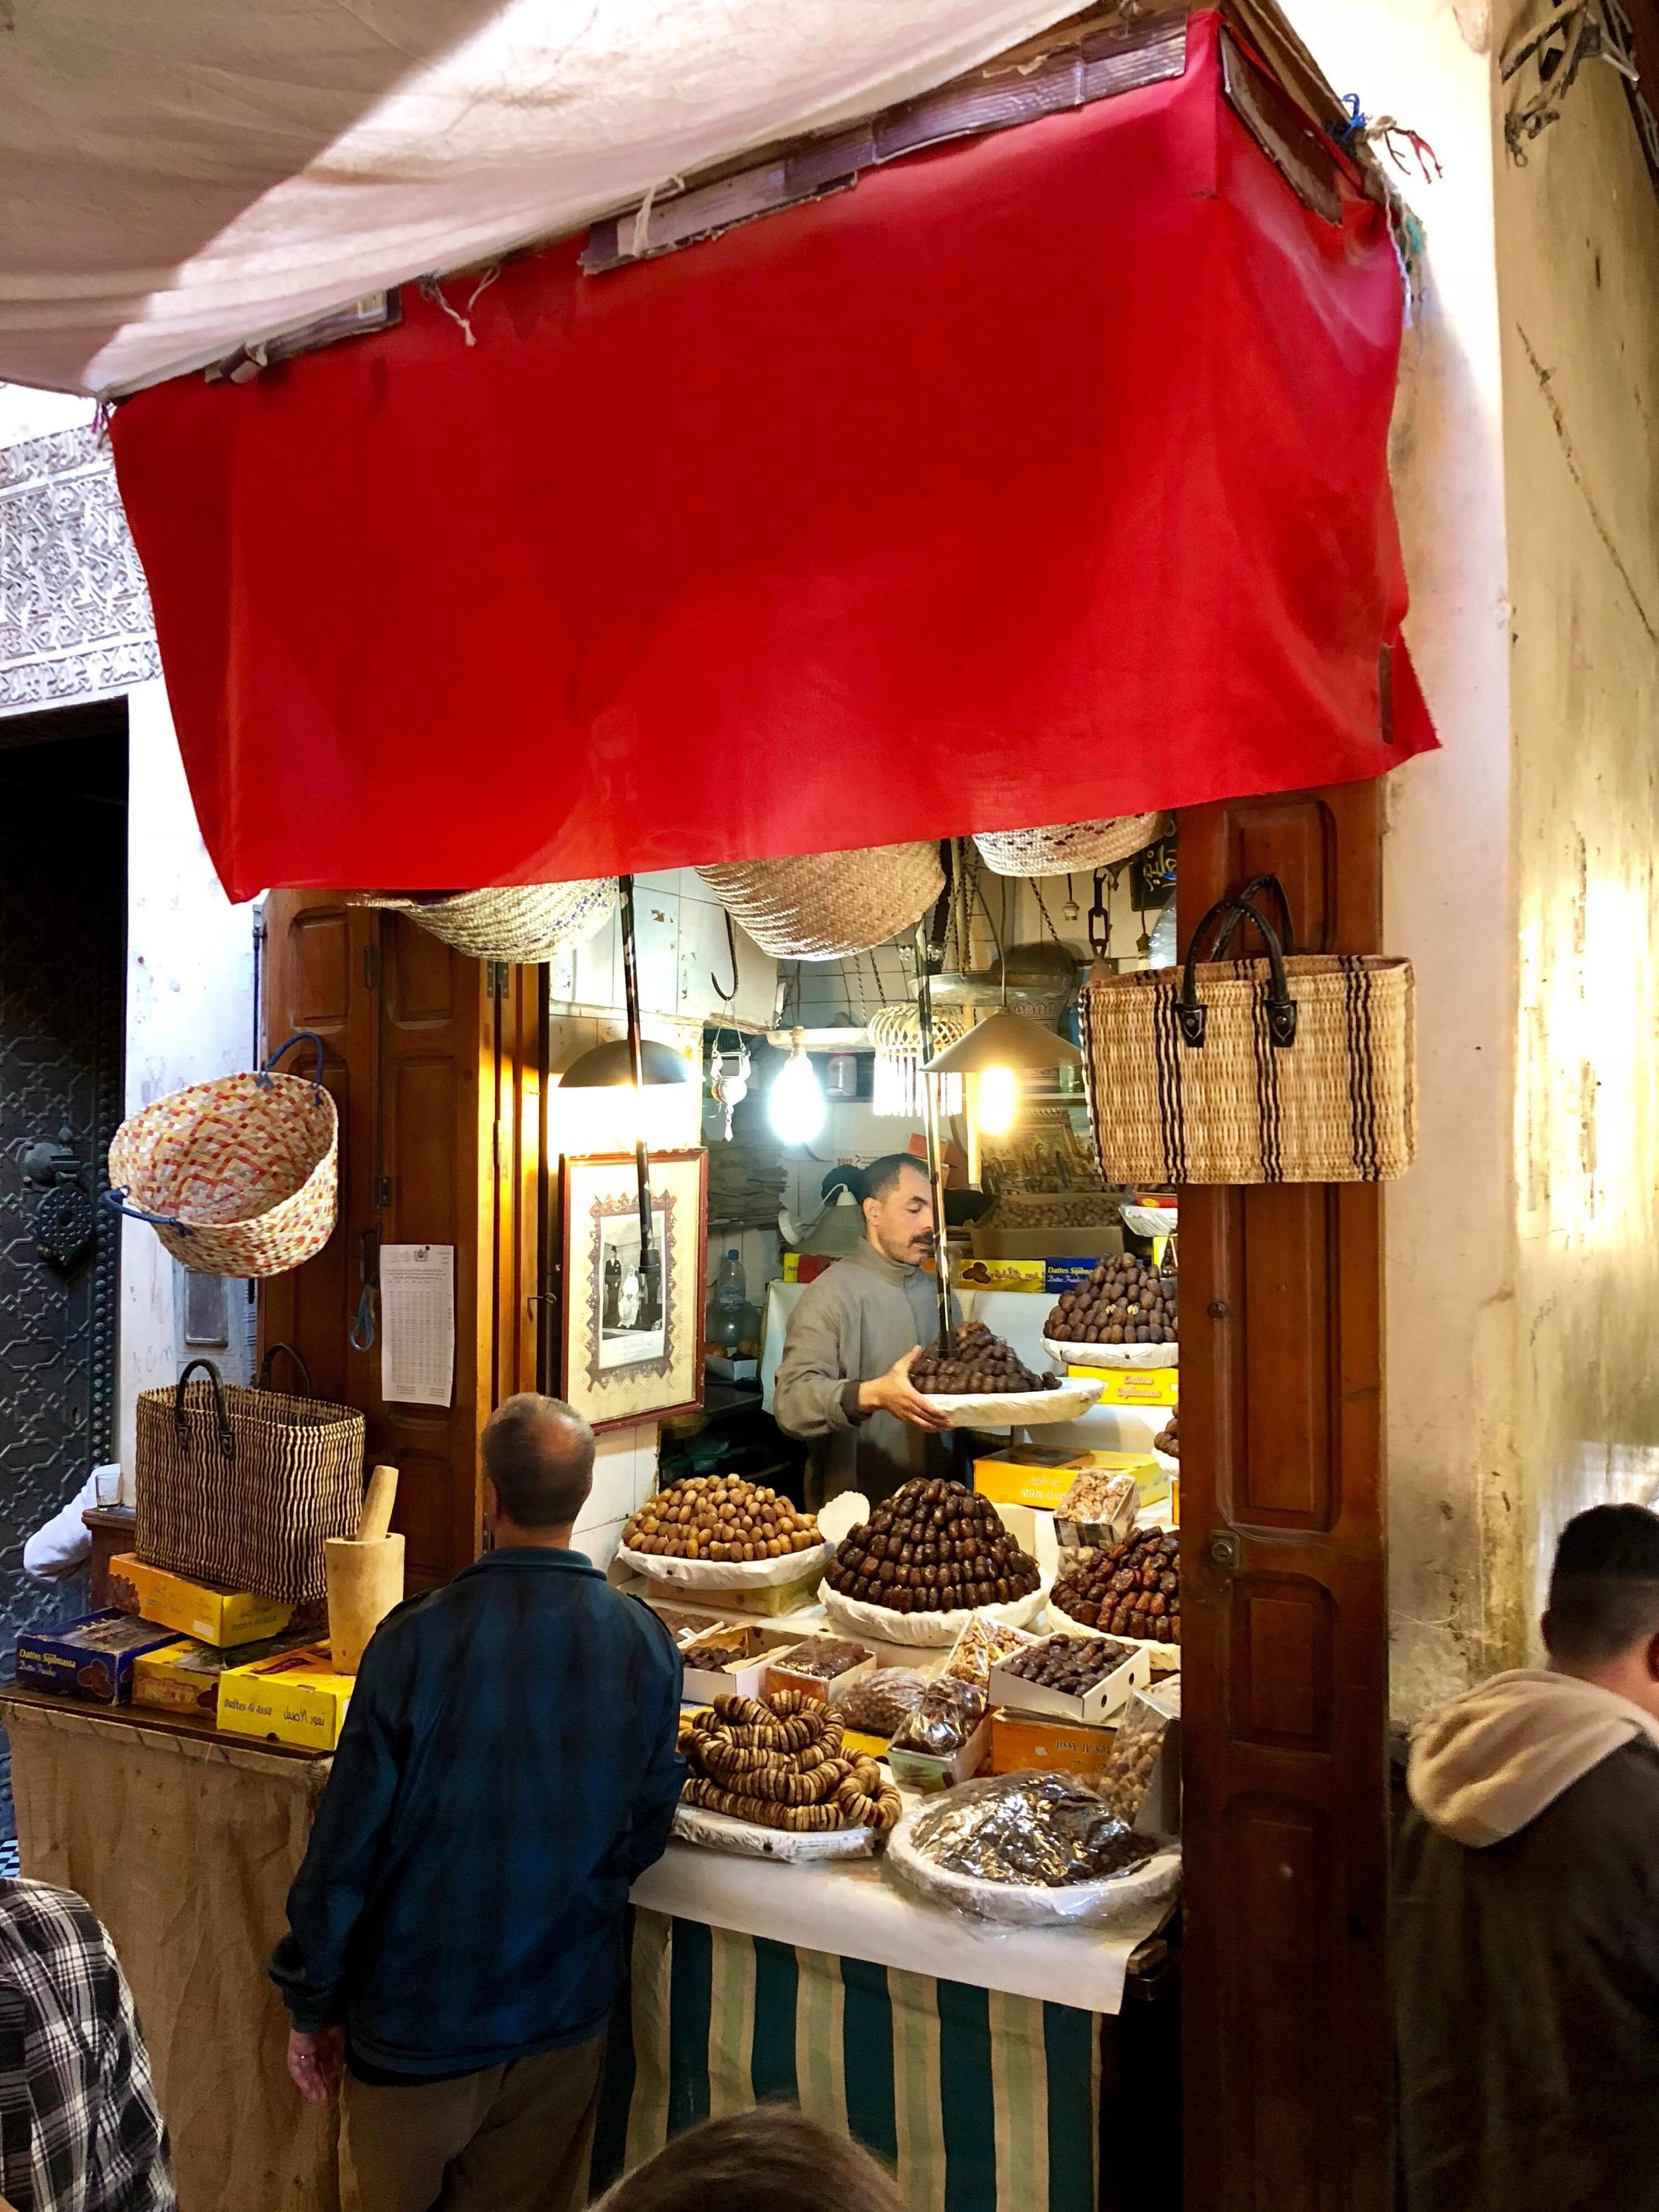 Walking through a Moroccan medina is like stepping back in time. It was hugely anachronistic for me to see the locals still using animals such as donkeys to transport their goods in the narrow streets.